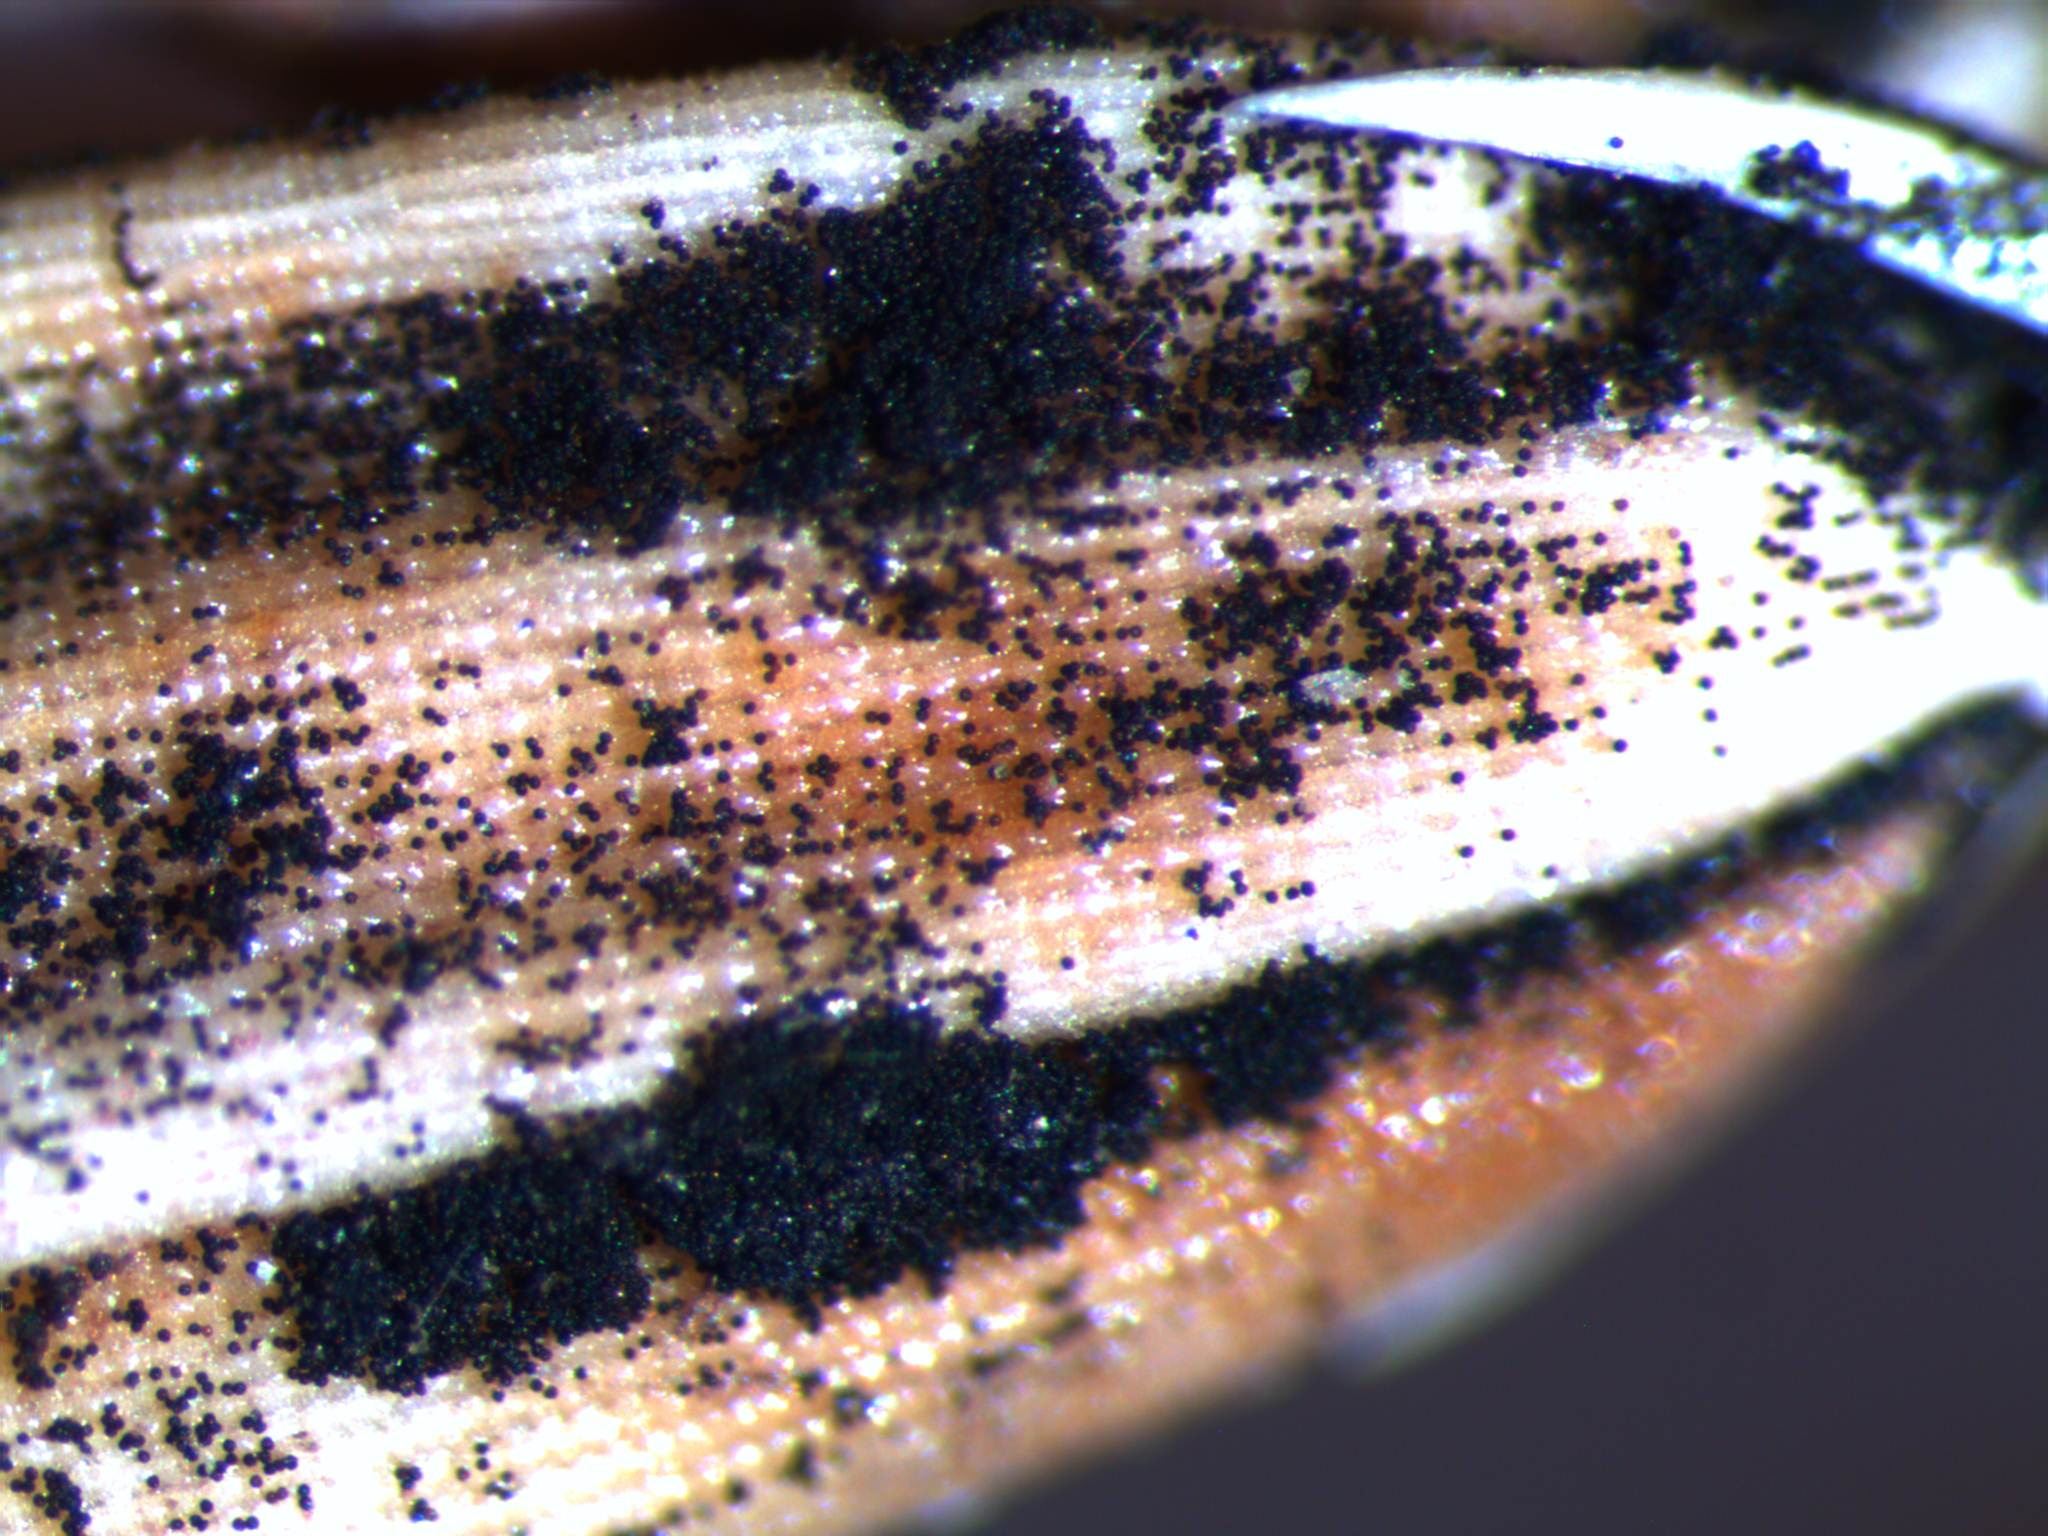 Spores oozing from grain